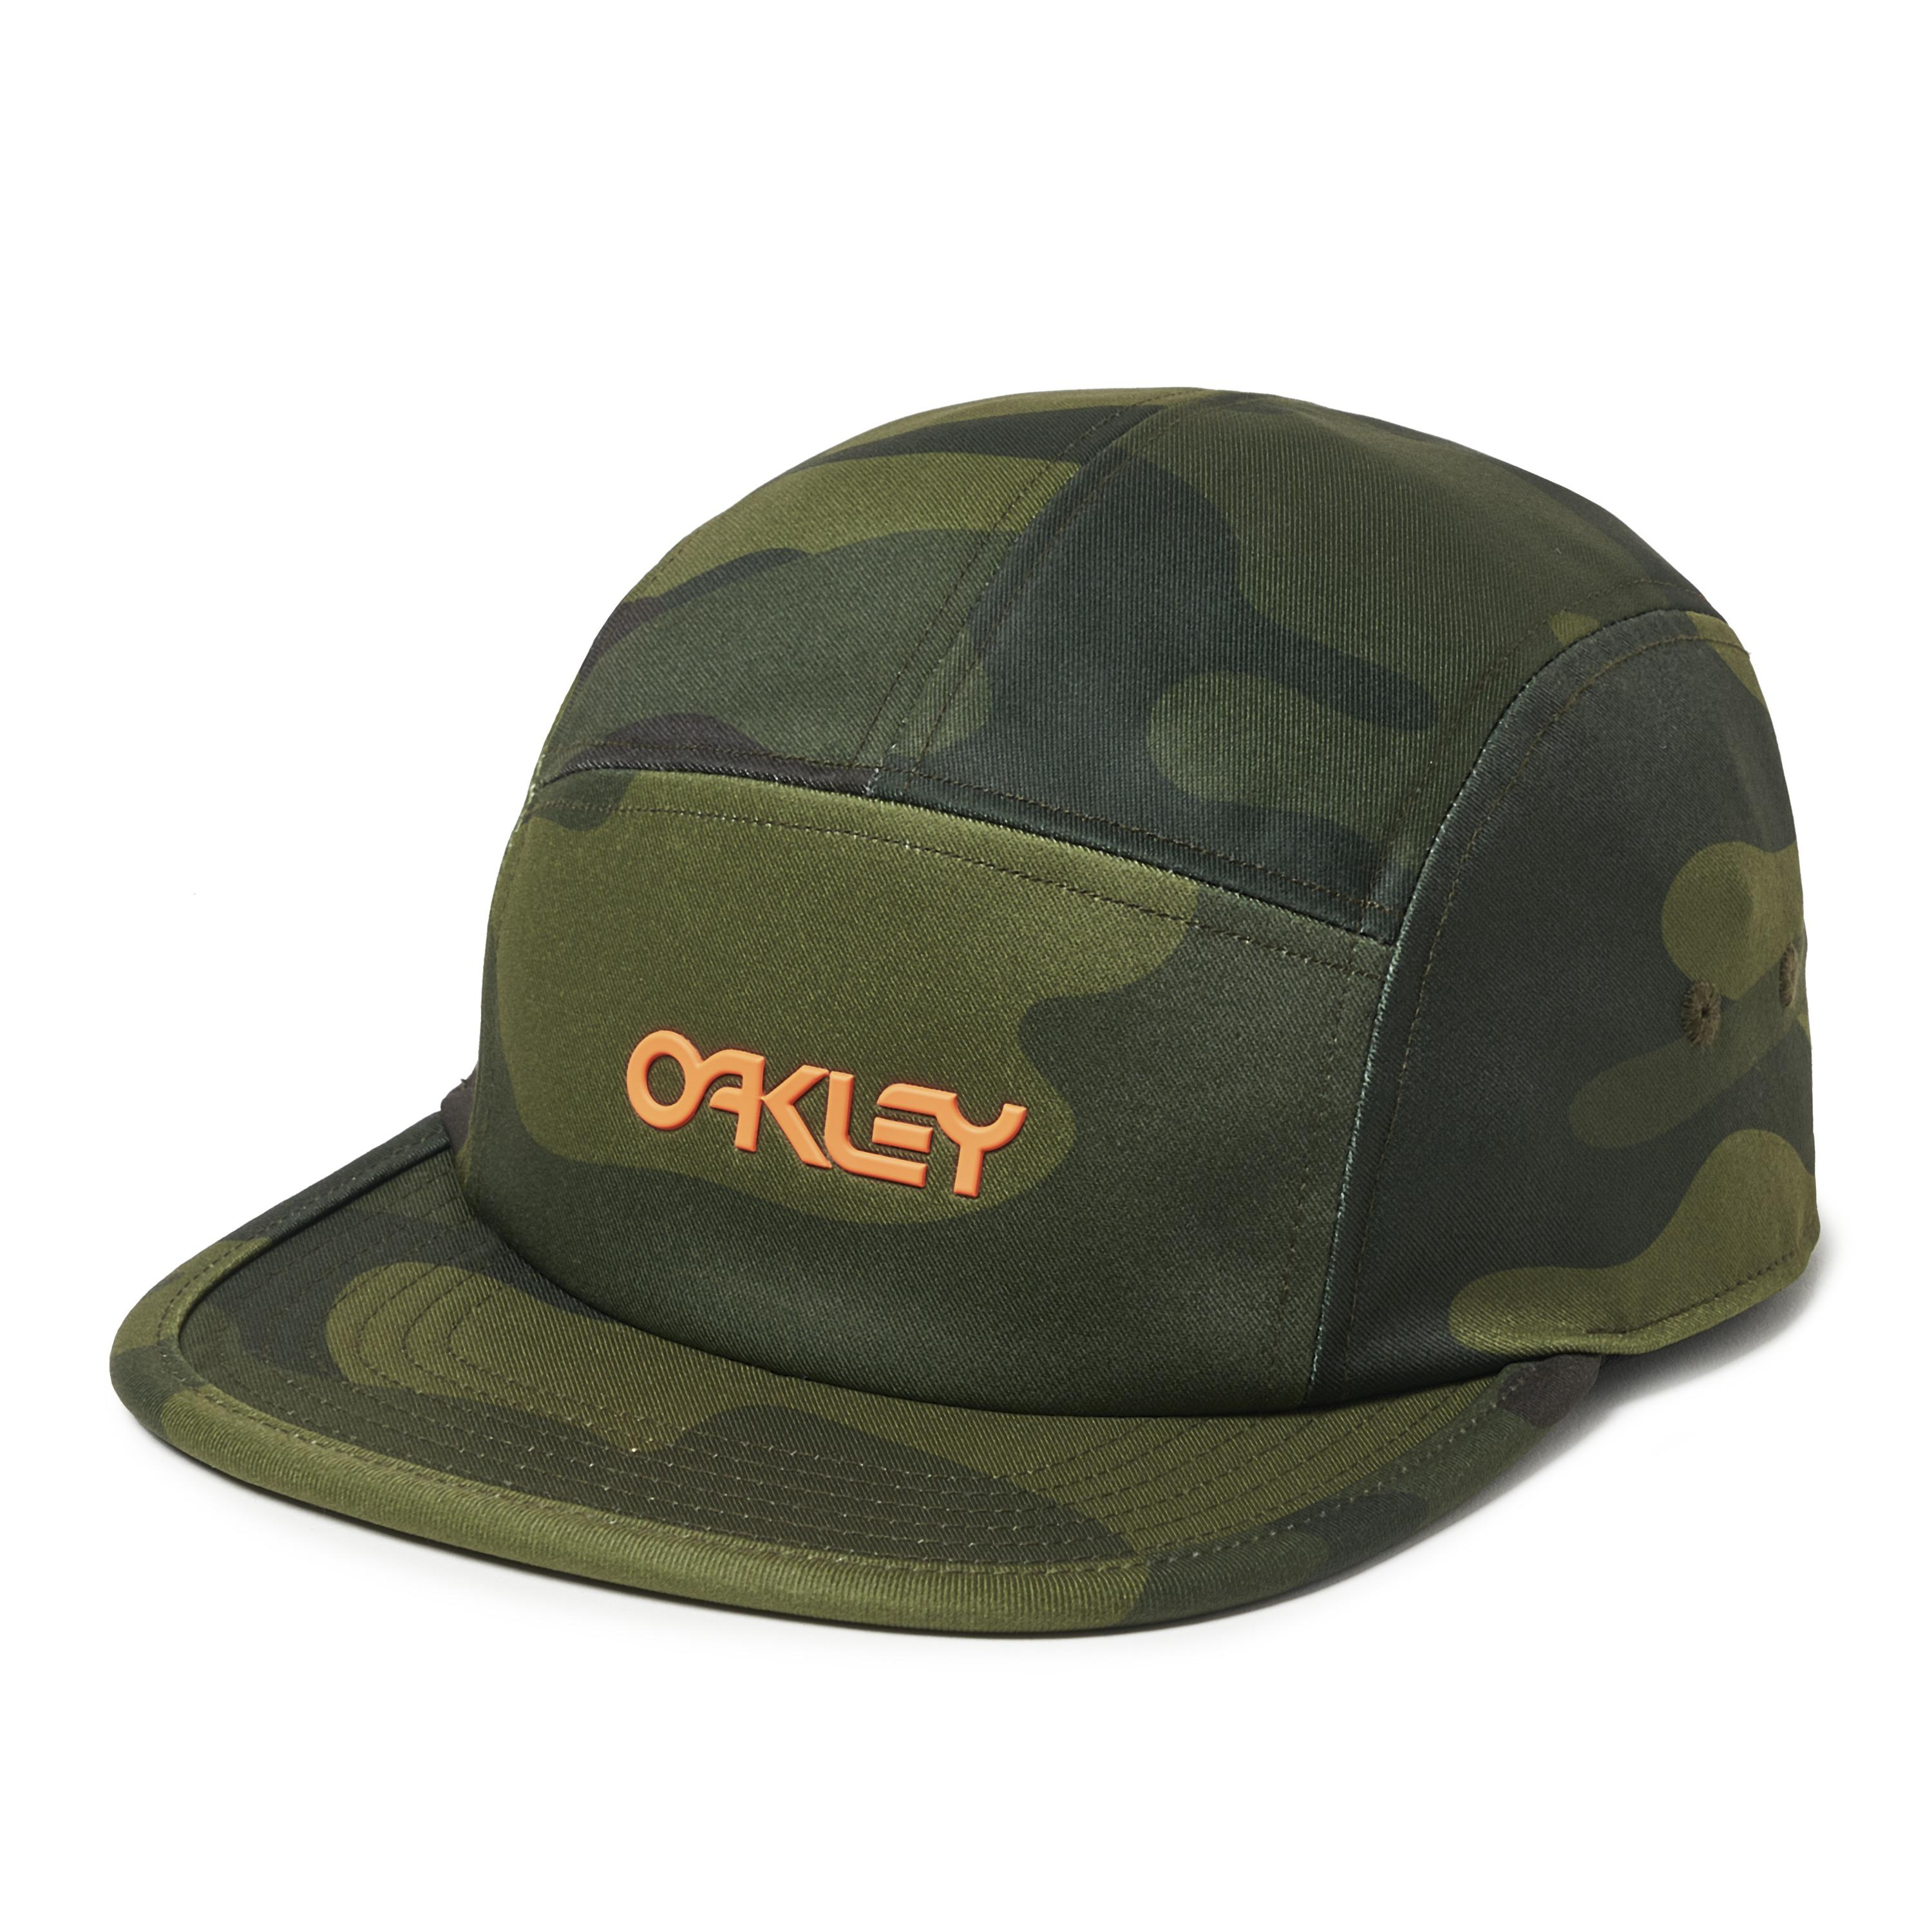 f16178faef4 Lyst - Oakley 5 Panel Cotton Camou Hat in Green for Men